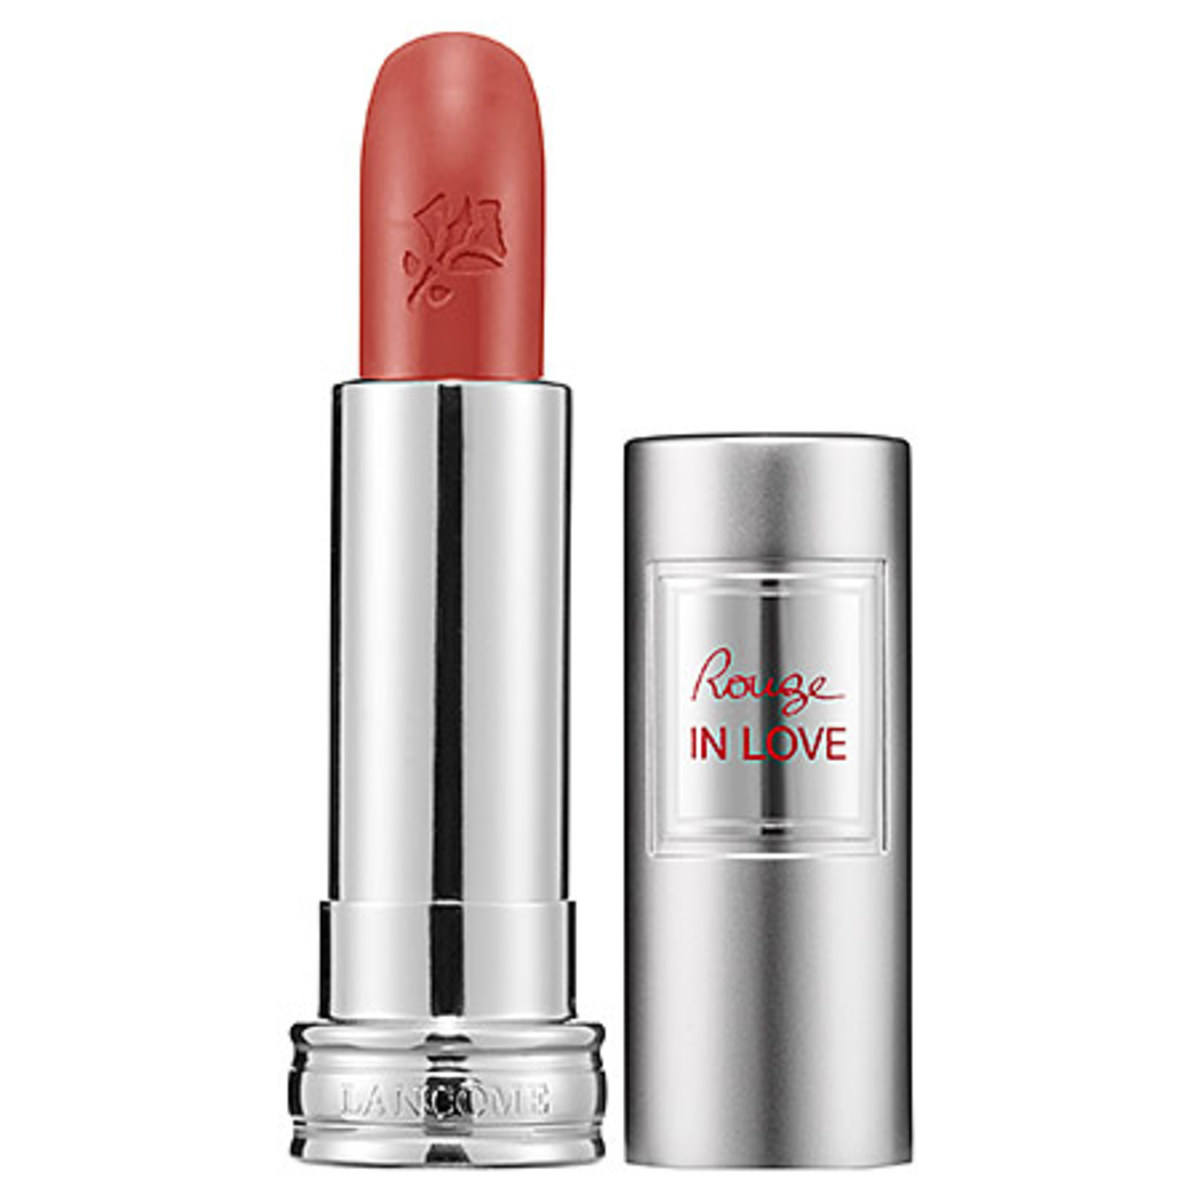 Lancome Rouge in Love Lipcolor in #106M Jolis Matins